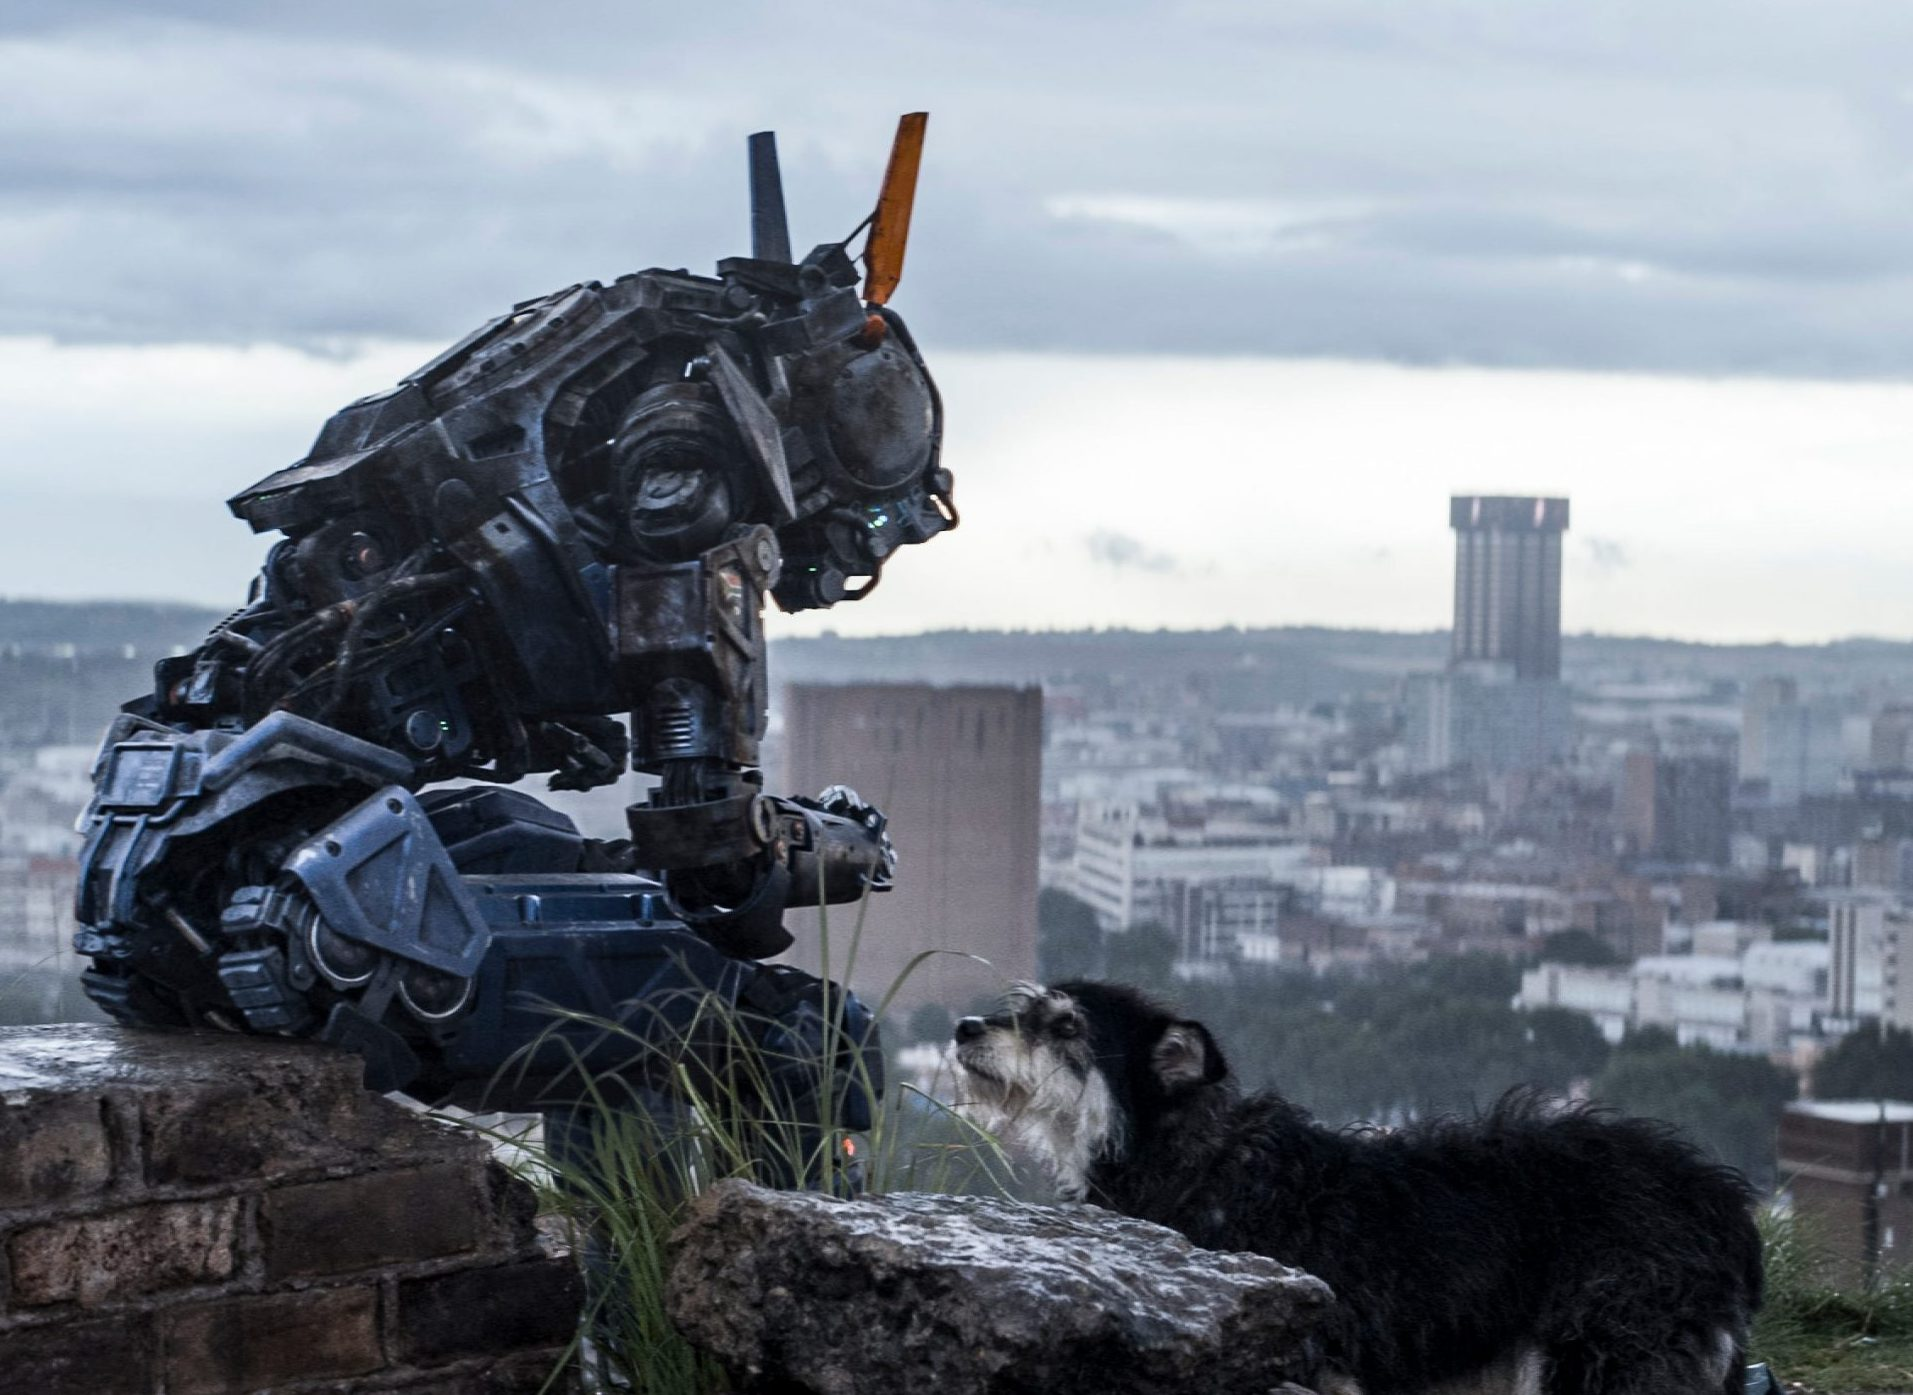 Chappie scaled e1624873316863 The Best (And Worst) Movie Robots